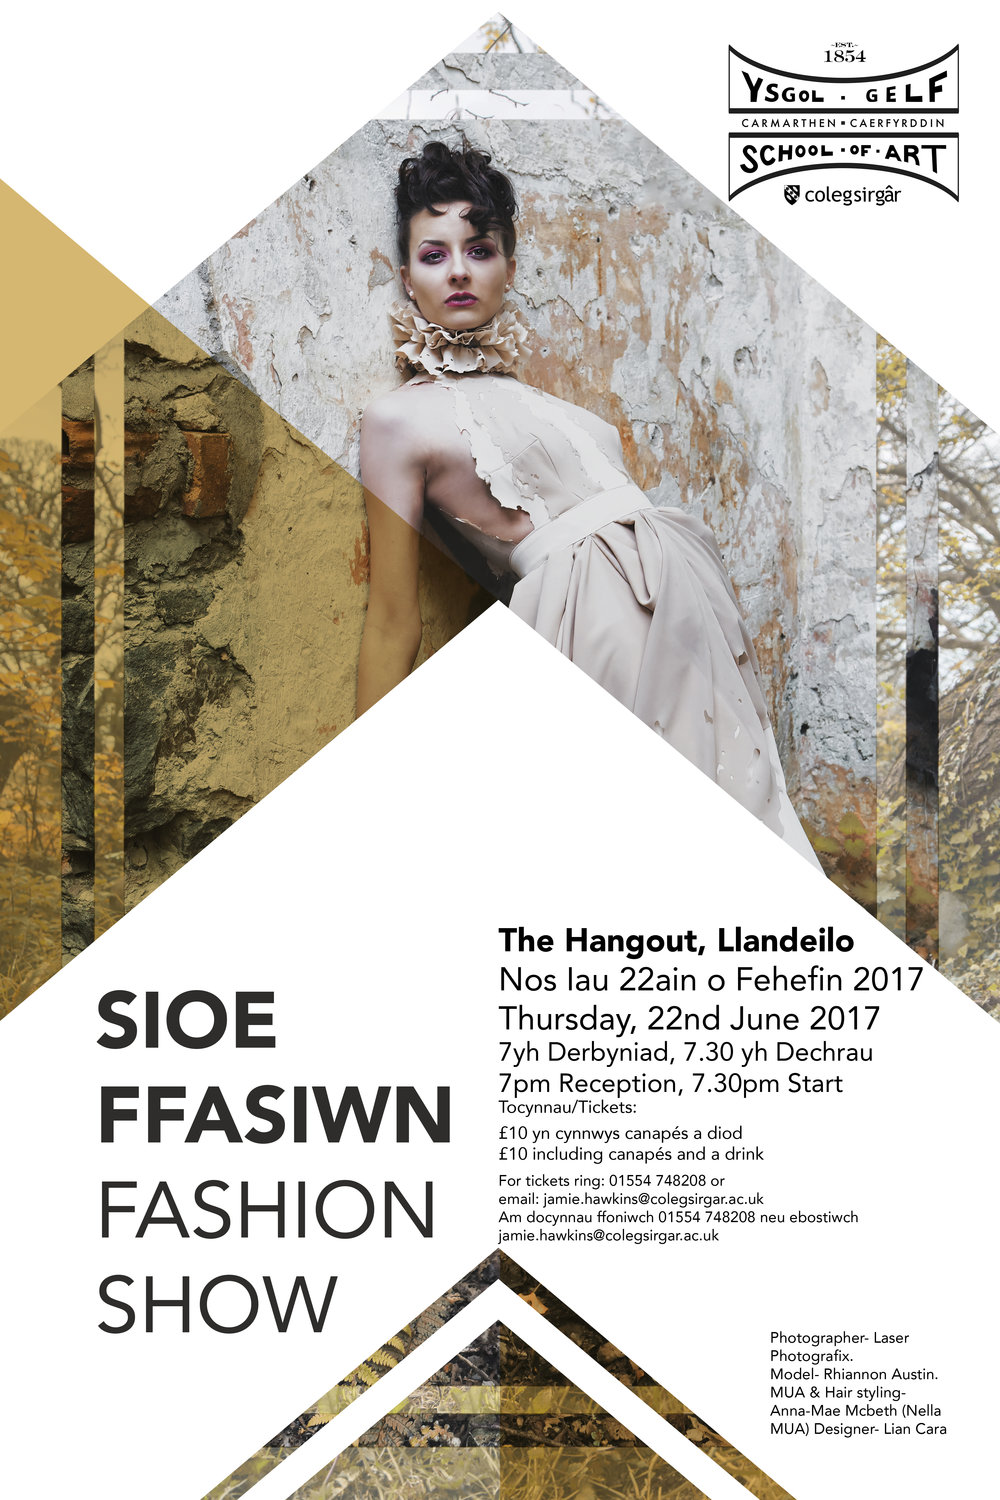 Fashion Show - Our annual graduate fashion show takes place on Thursday 22nd June at The Hangout in Llandeilo.Arrival 7pmShow starts 7.30pm